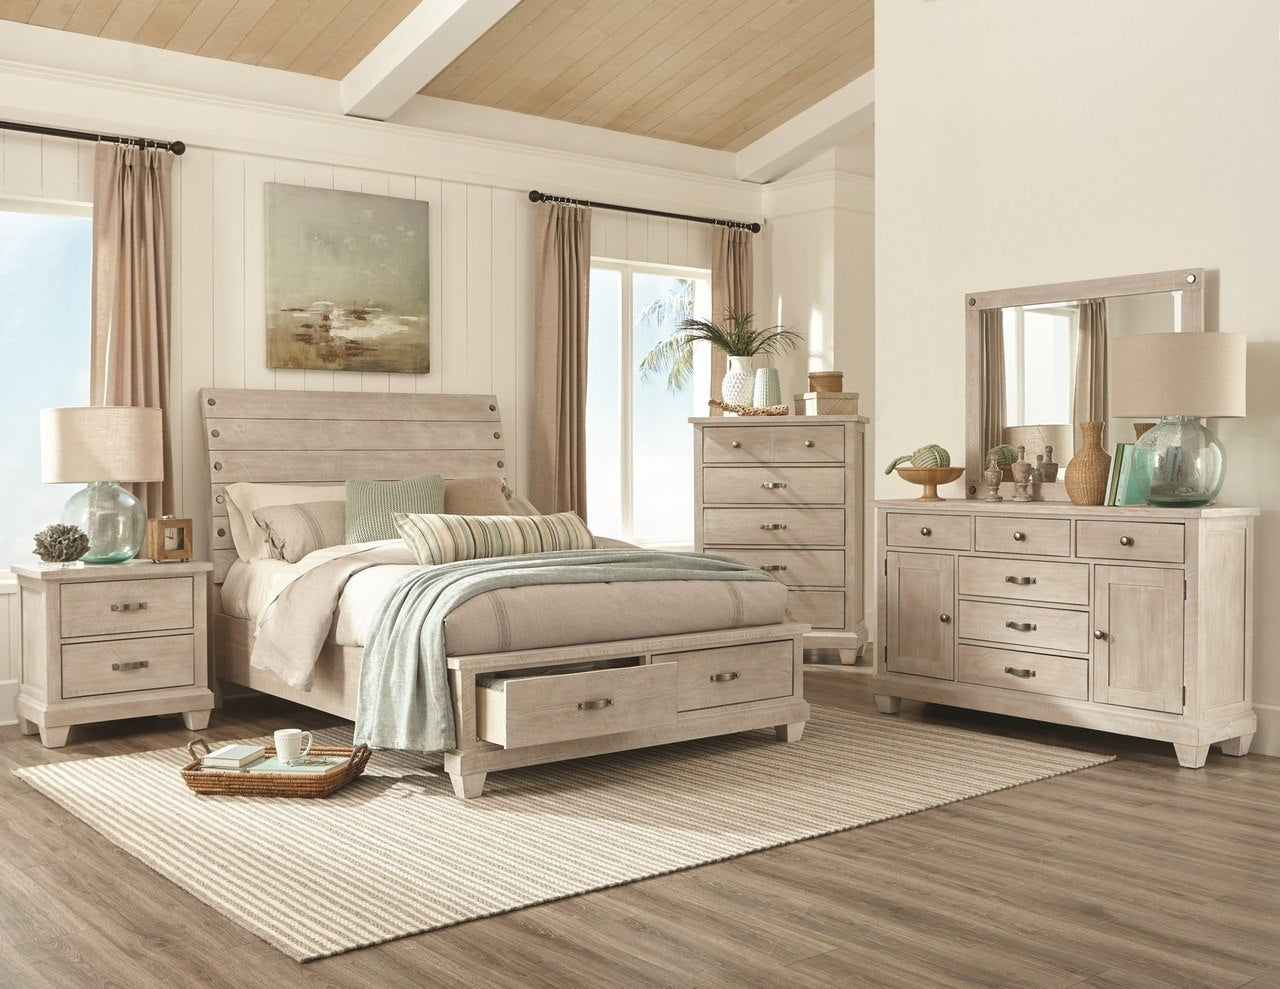 White Wash Country Queen Bedroom Set My Furniture Place